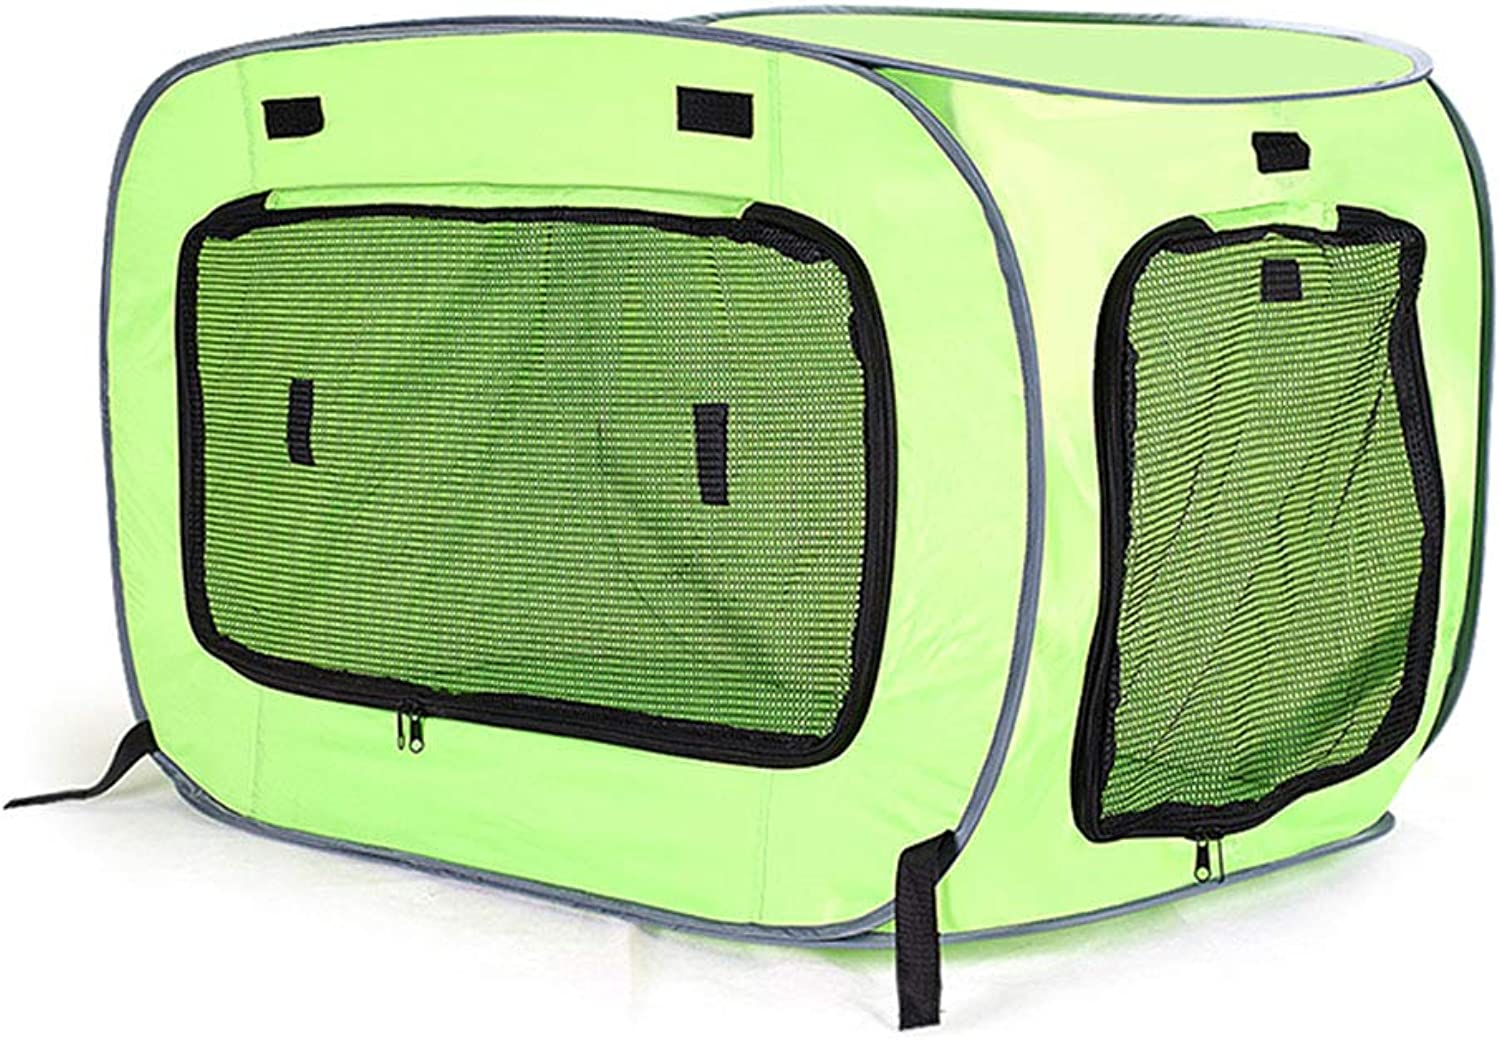 Pet Booster Seat, Dog Car Seat, Traveling Pet Fencet, Breathable Pet Outing Tent, Portable Carrier, Waterproof Cage Crate, Foldable for Cat Puupy,S